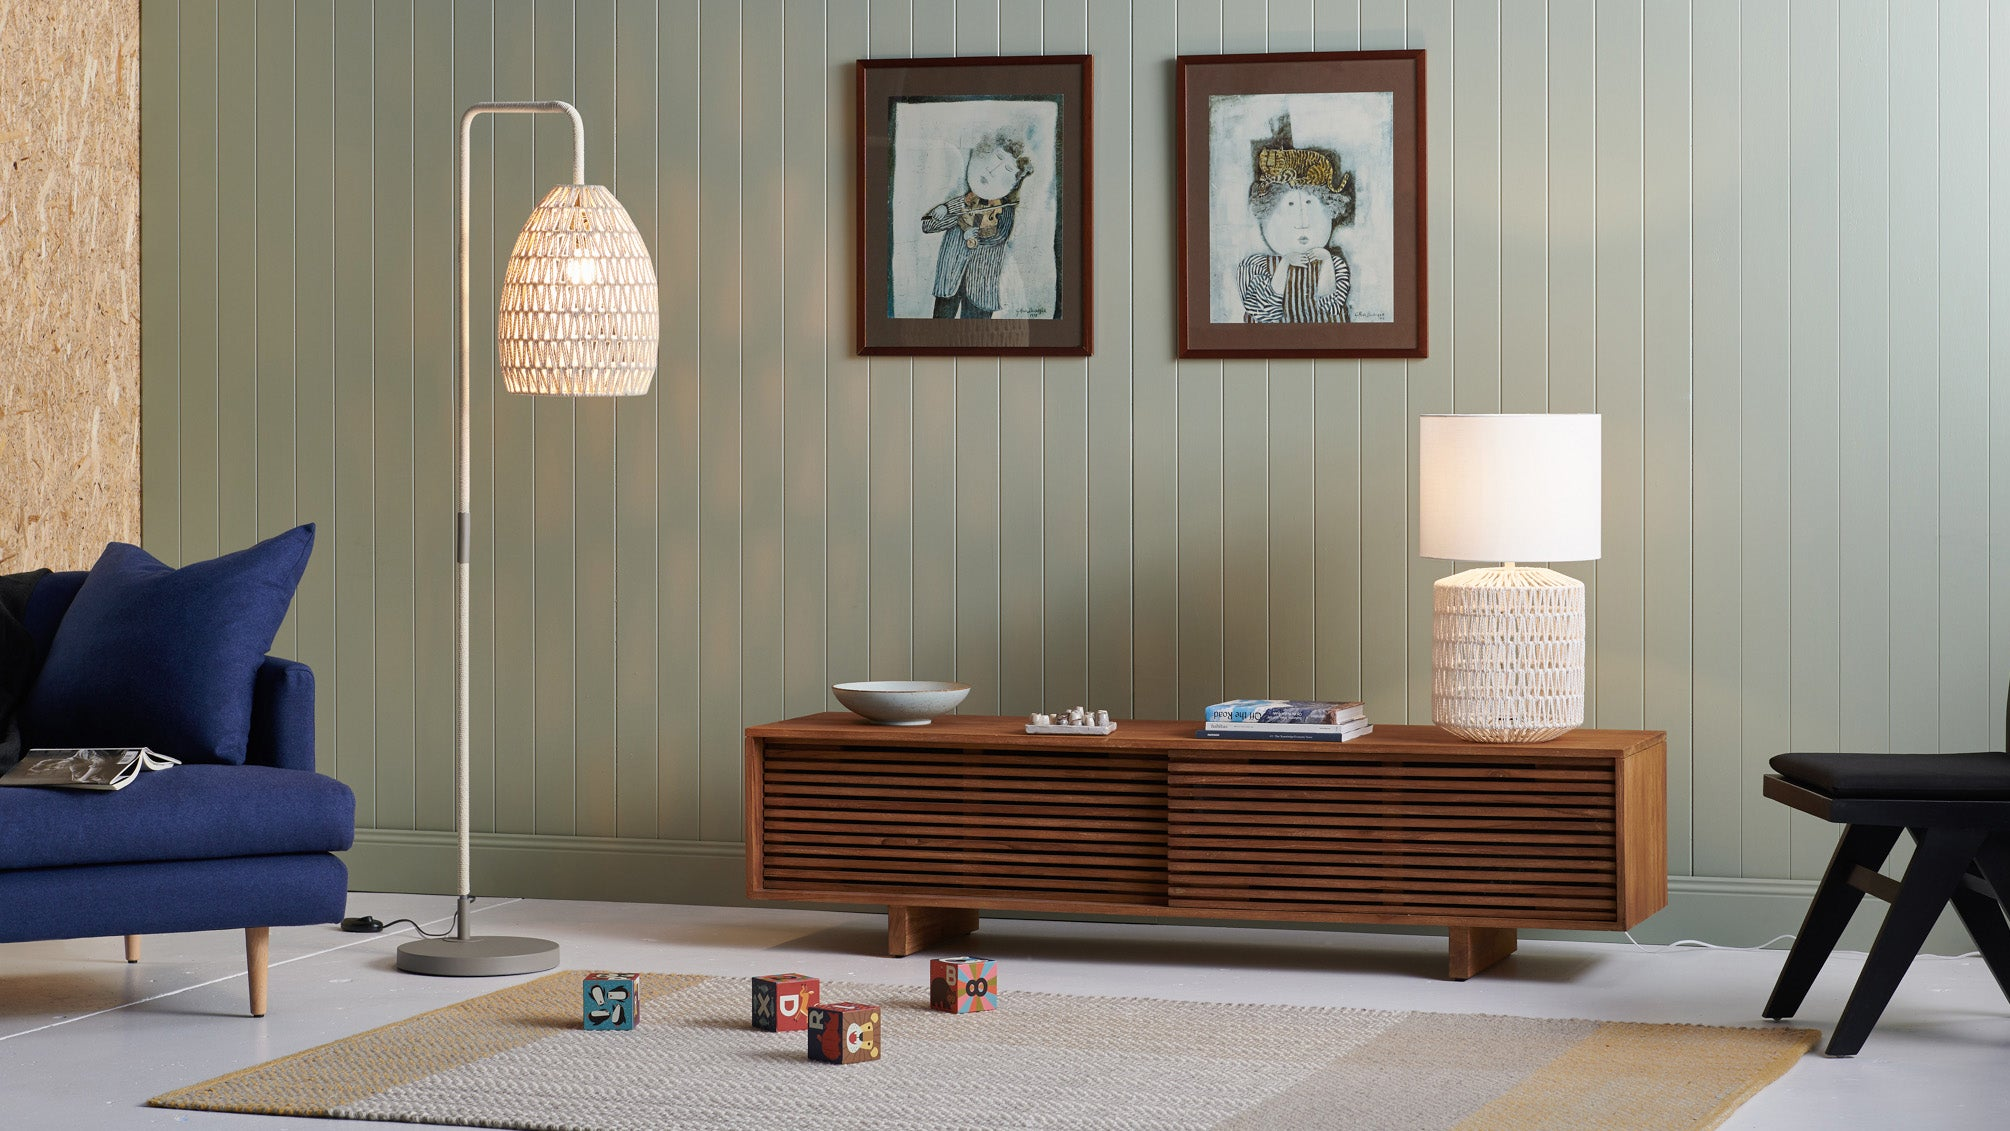 Table and floor lamp in living room